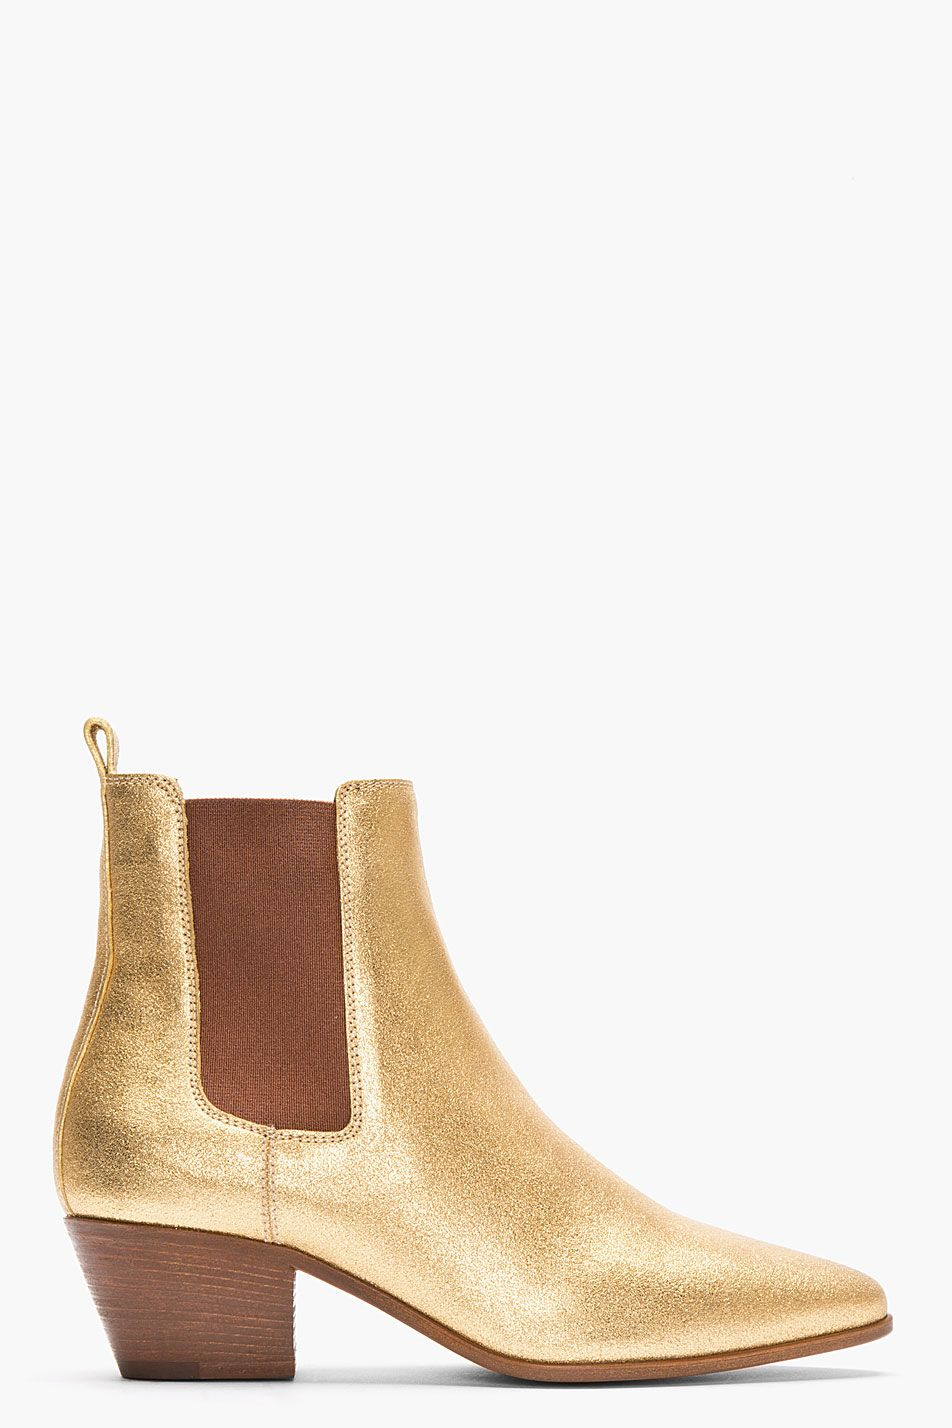 Saint Laurent Metallic Gold Leather Chelsea Ankle Boots for women ... a2b4617fb